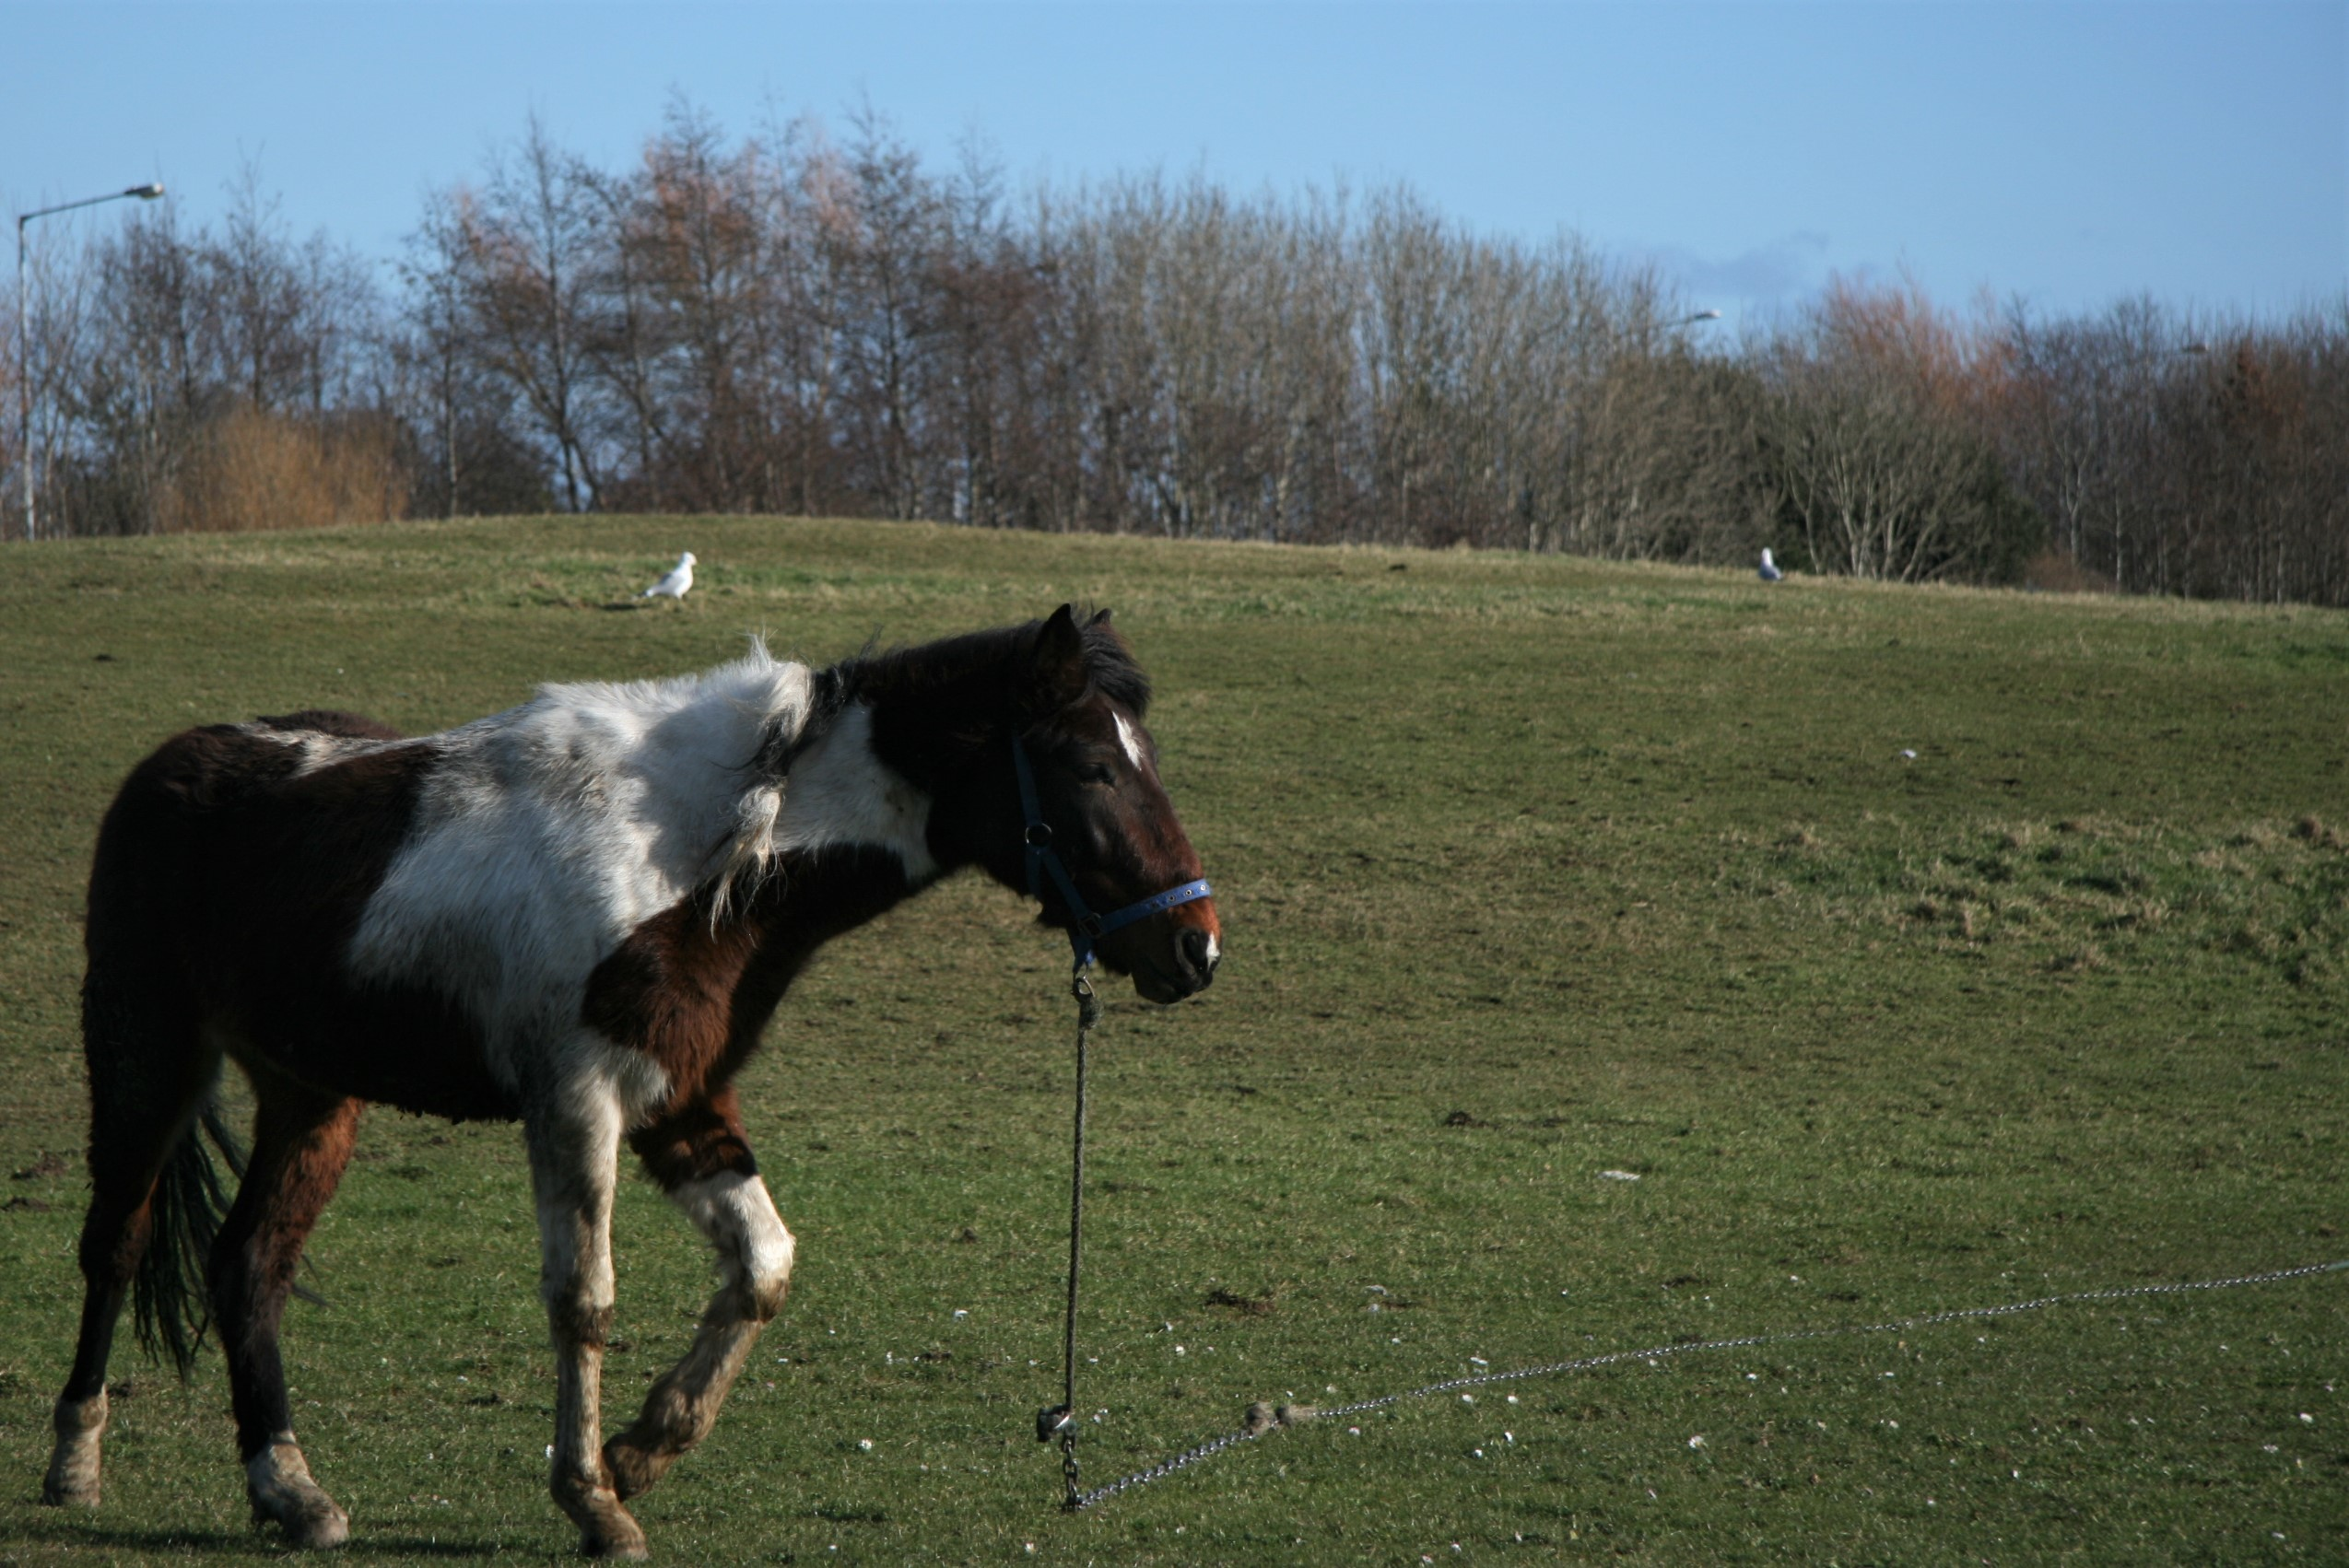 A horse, tied to a chain, wanders aimlessly and listlessly at a Darndale park, with no company, or water in sight.